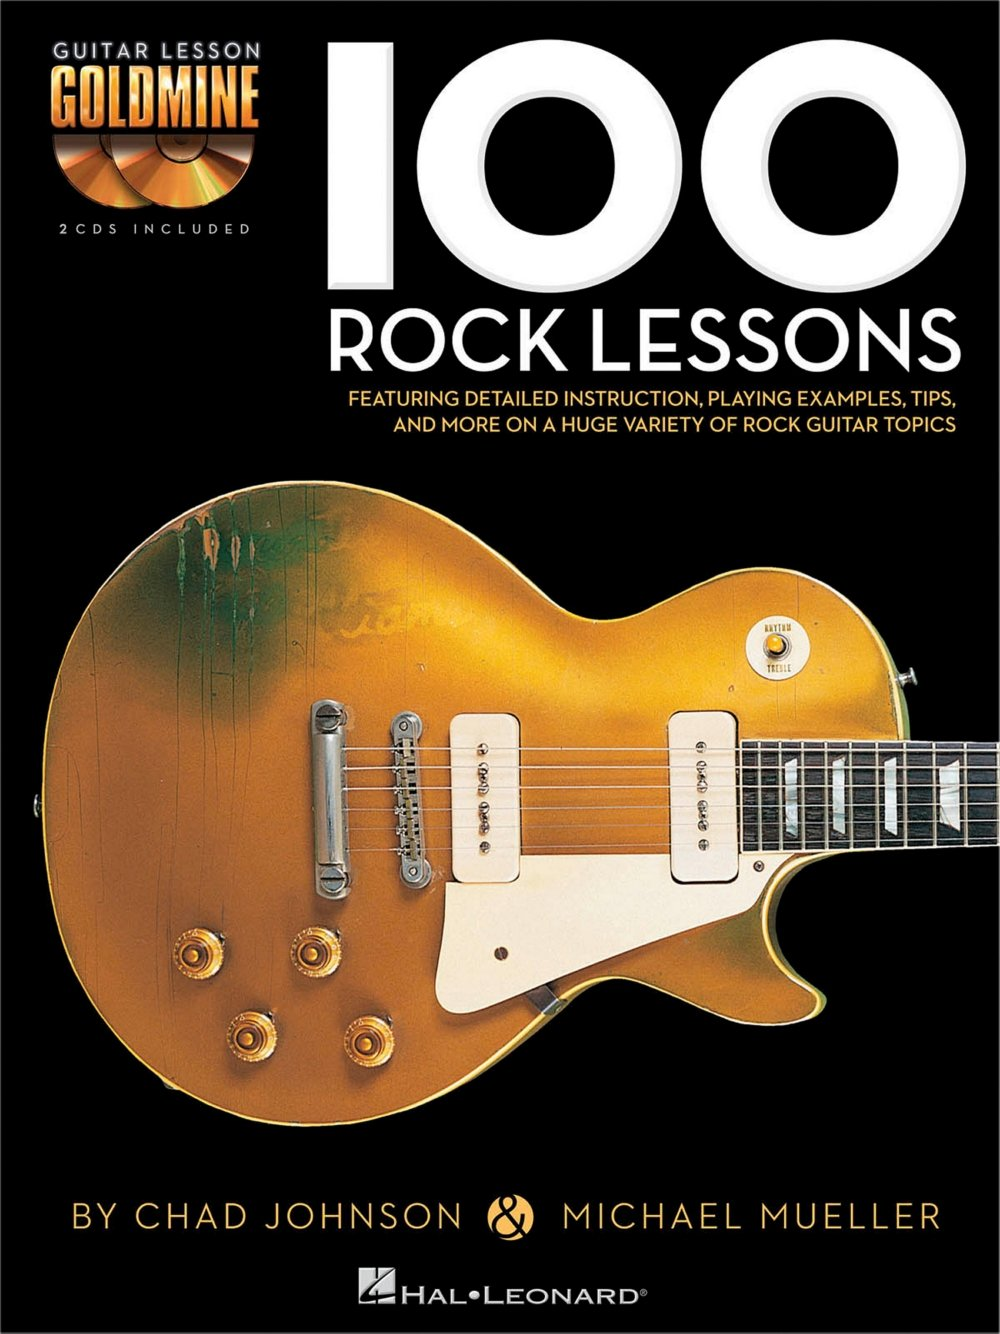 Amazon.com: Hal Leonard 100 Rock Lessons Guitar Lesson Goldmine Series  Book/CD (0884088528546): Hal Leonard: Books